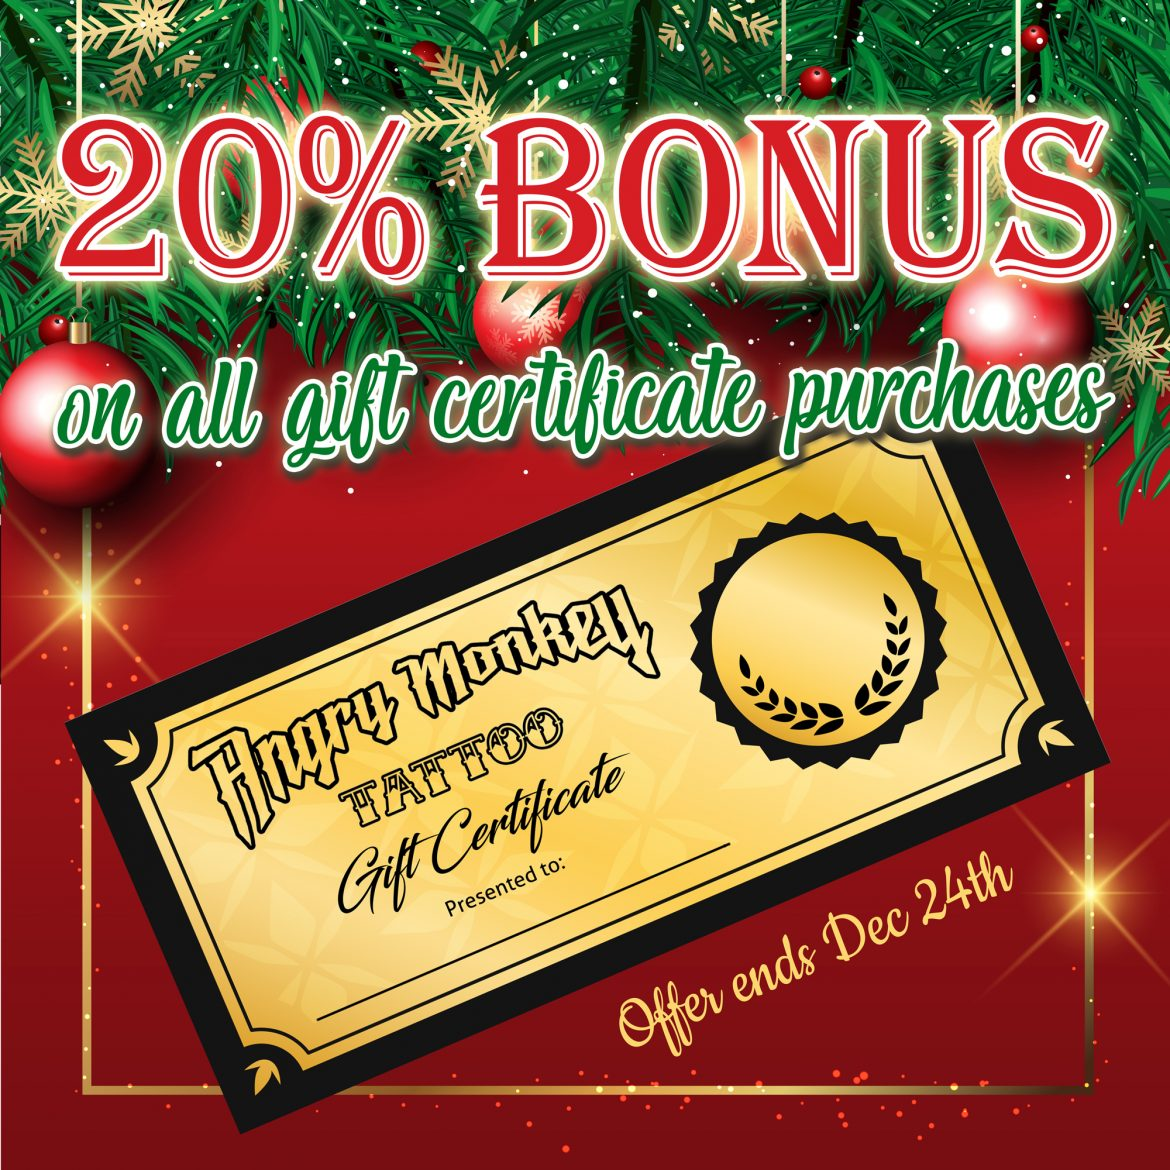 20% Bonus on all Gift Certificate Purchases